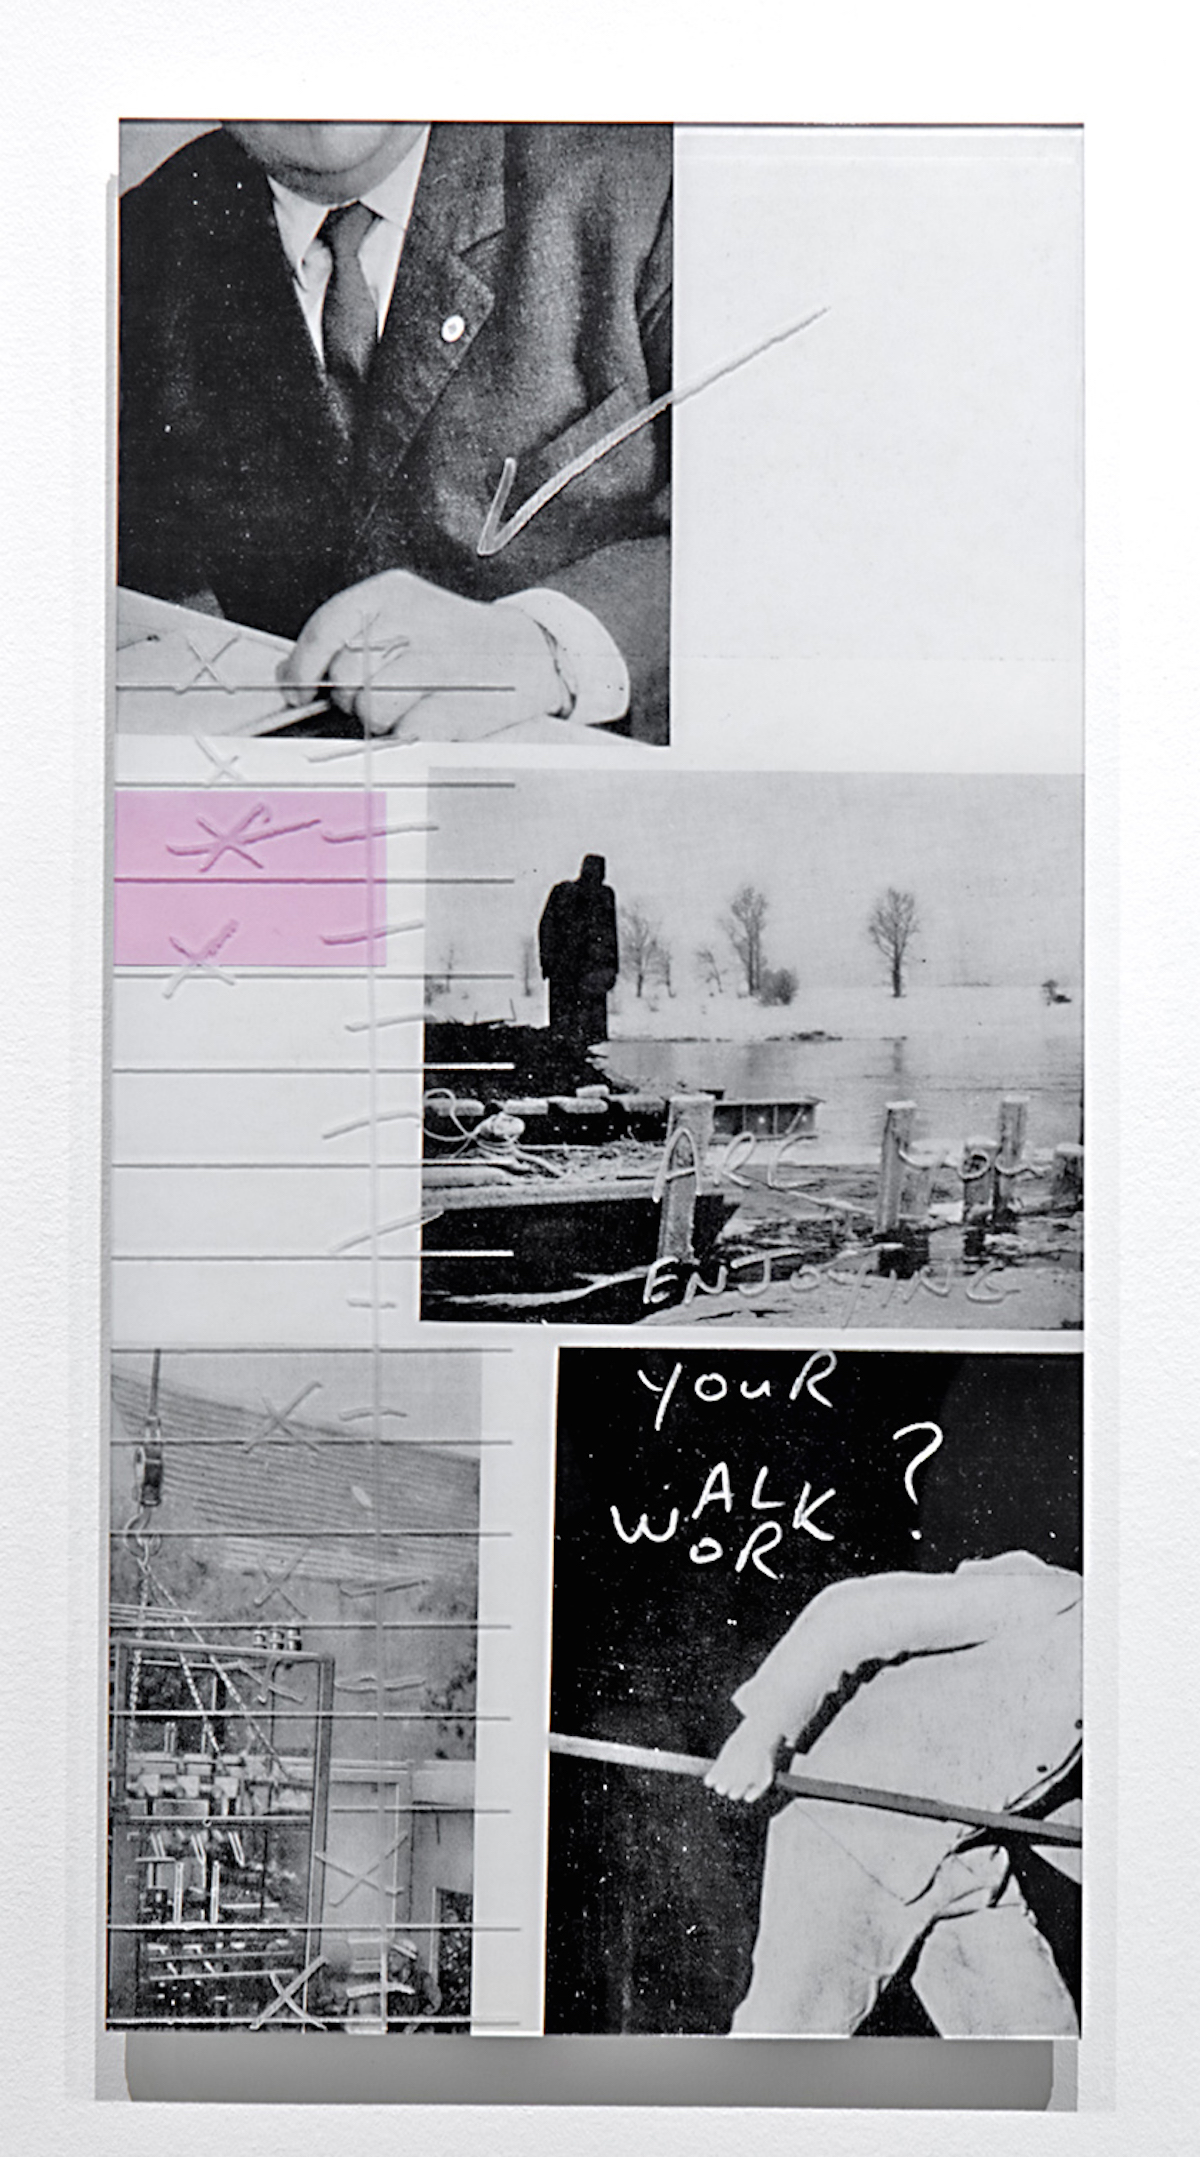 Jacob Whibley, Are you enjoying your walk work, 2016